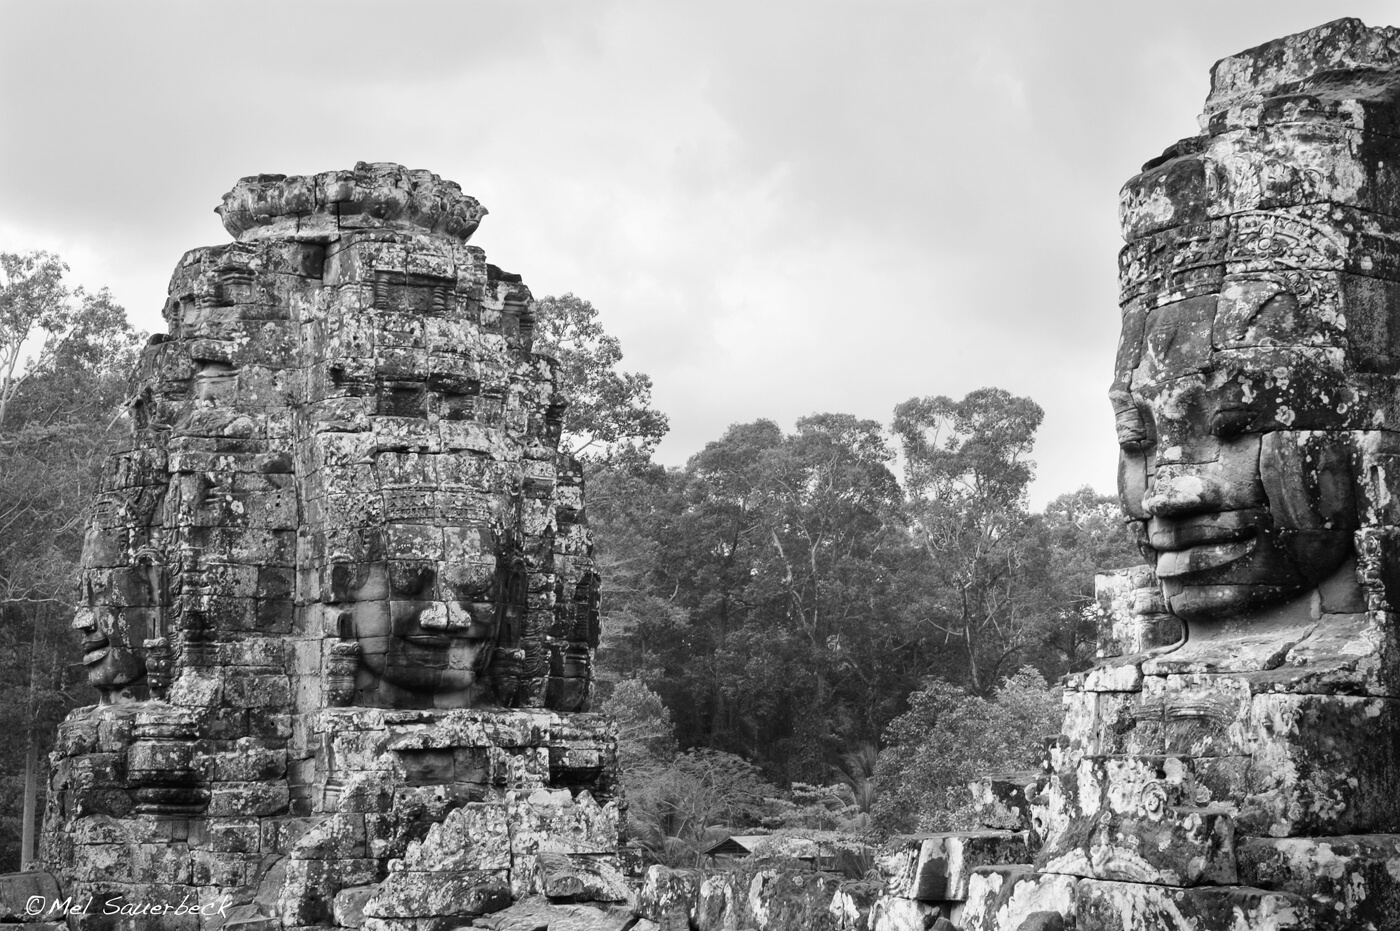 Four faced statues, Angor Wat, Cambodia